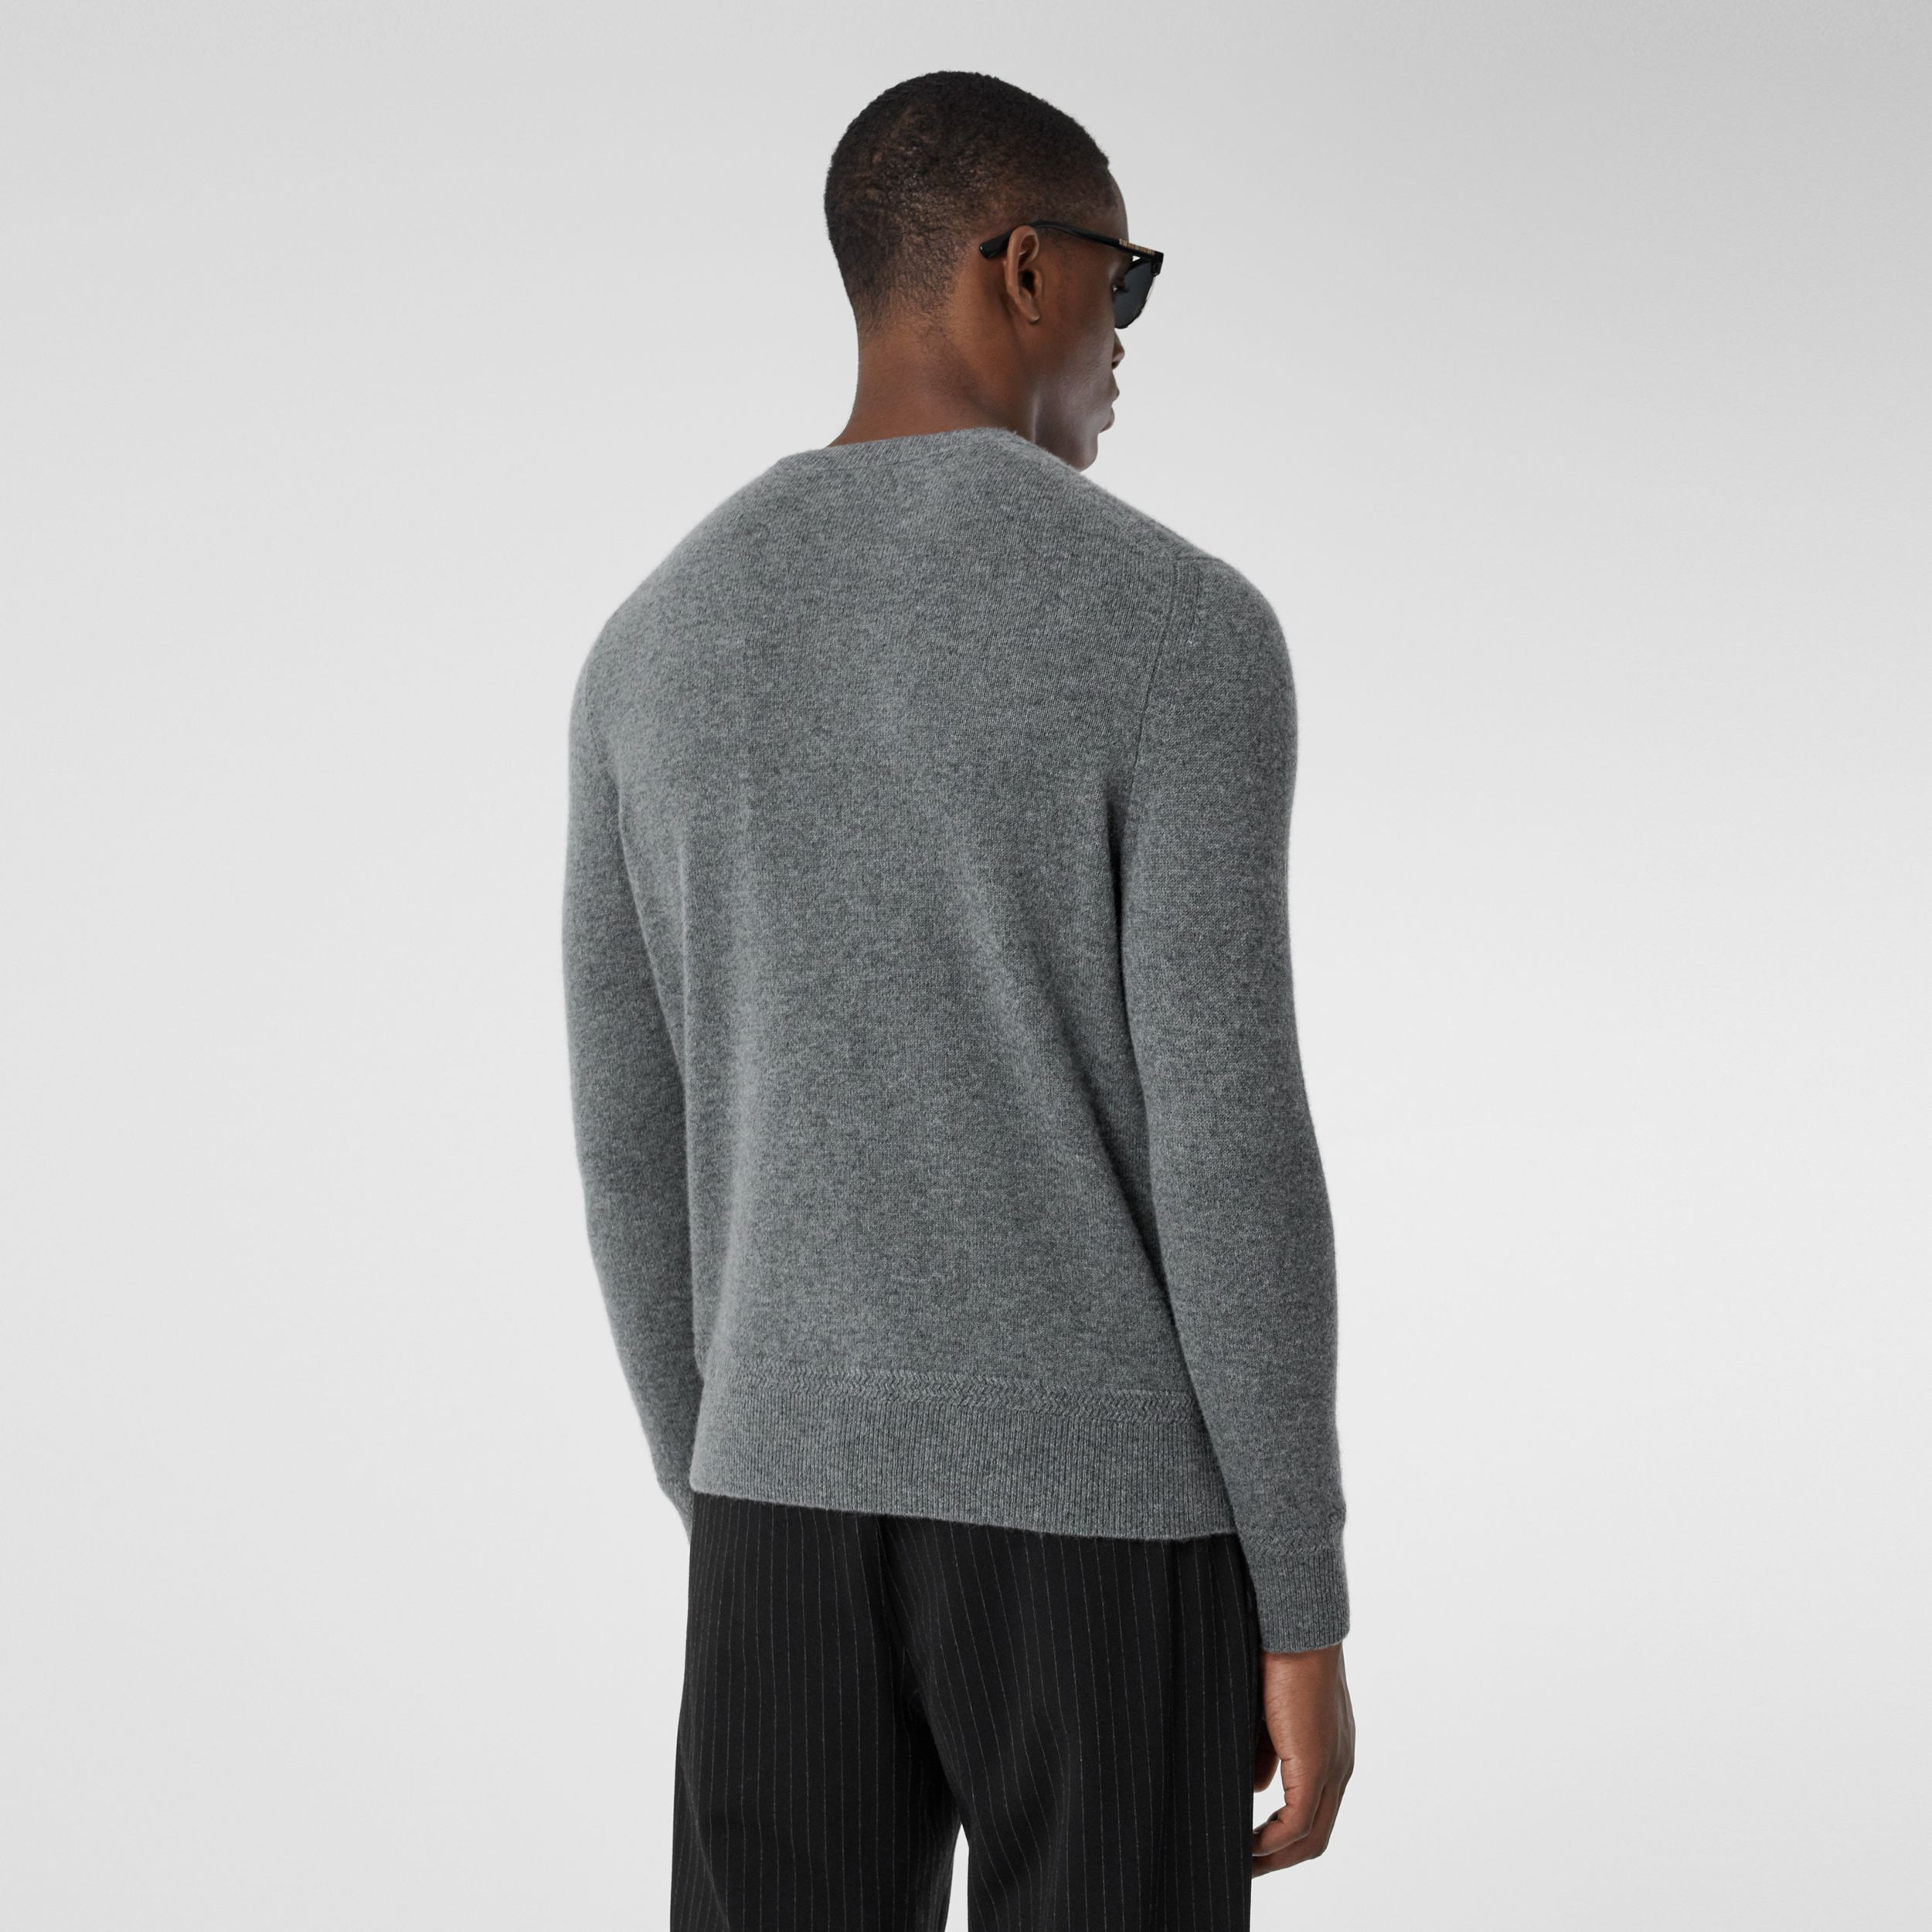 Monogram Motif Cashmere Sweater in Mid Grey Melange - Men | Burberry - 3